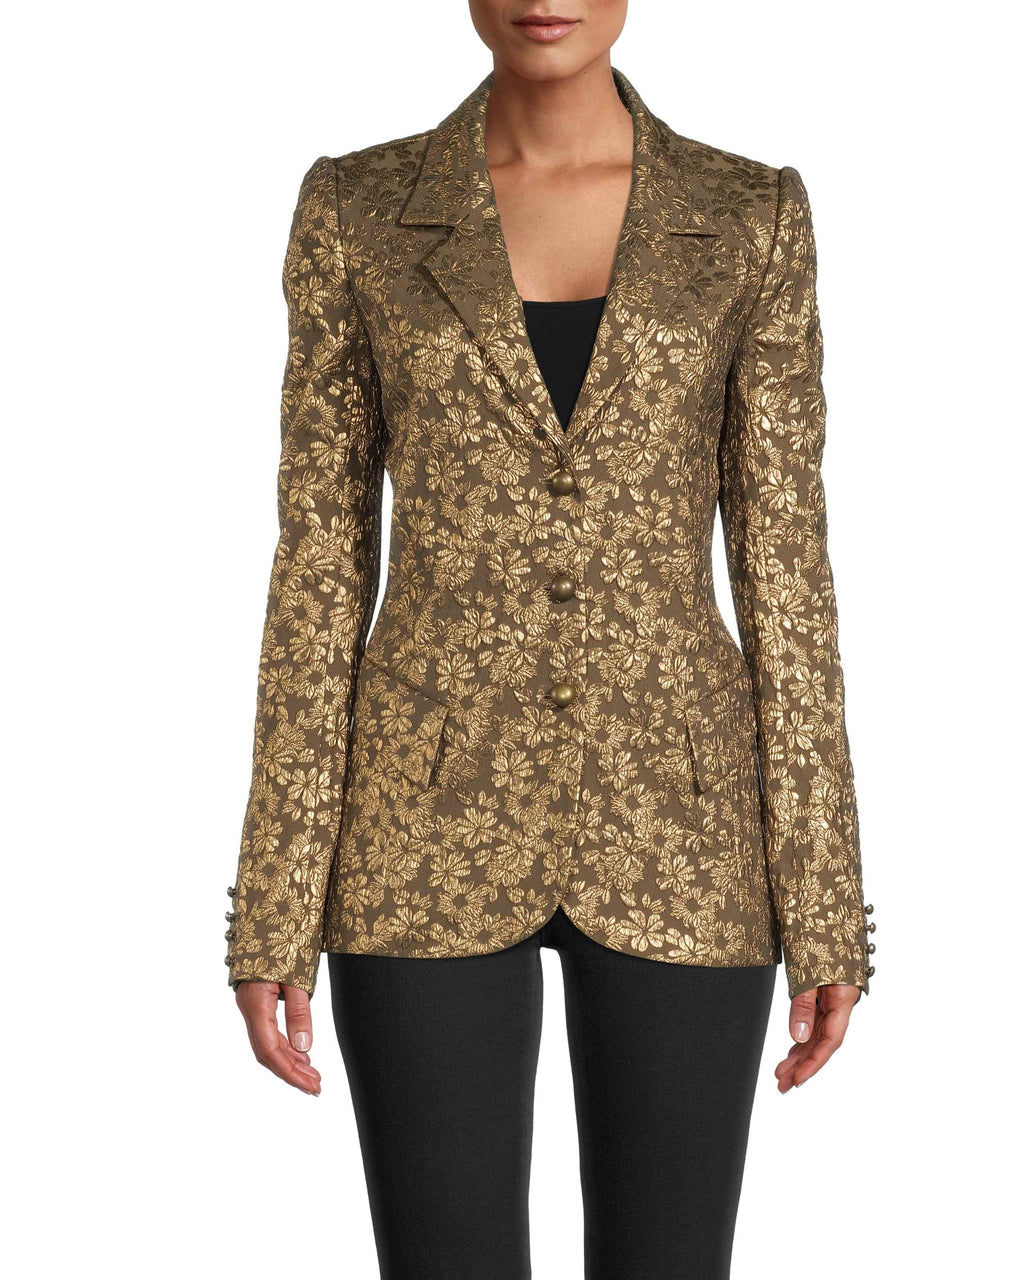 CJ18467 - METALLIC FLORAL JACQUARD BLAZER - outerwear - blazers - This statement blazer is adorned with metallic floral detail throughout. Designed in a classic blazer silhouette with fashionable updates like a slightly puffed sleeve, hidden front buttons and front pockets. Add 1 line break Stylist tip: Style with the matching pants for a standout look.